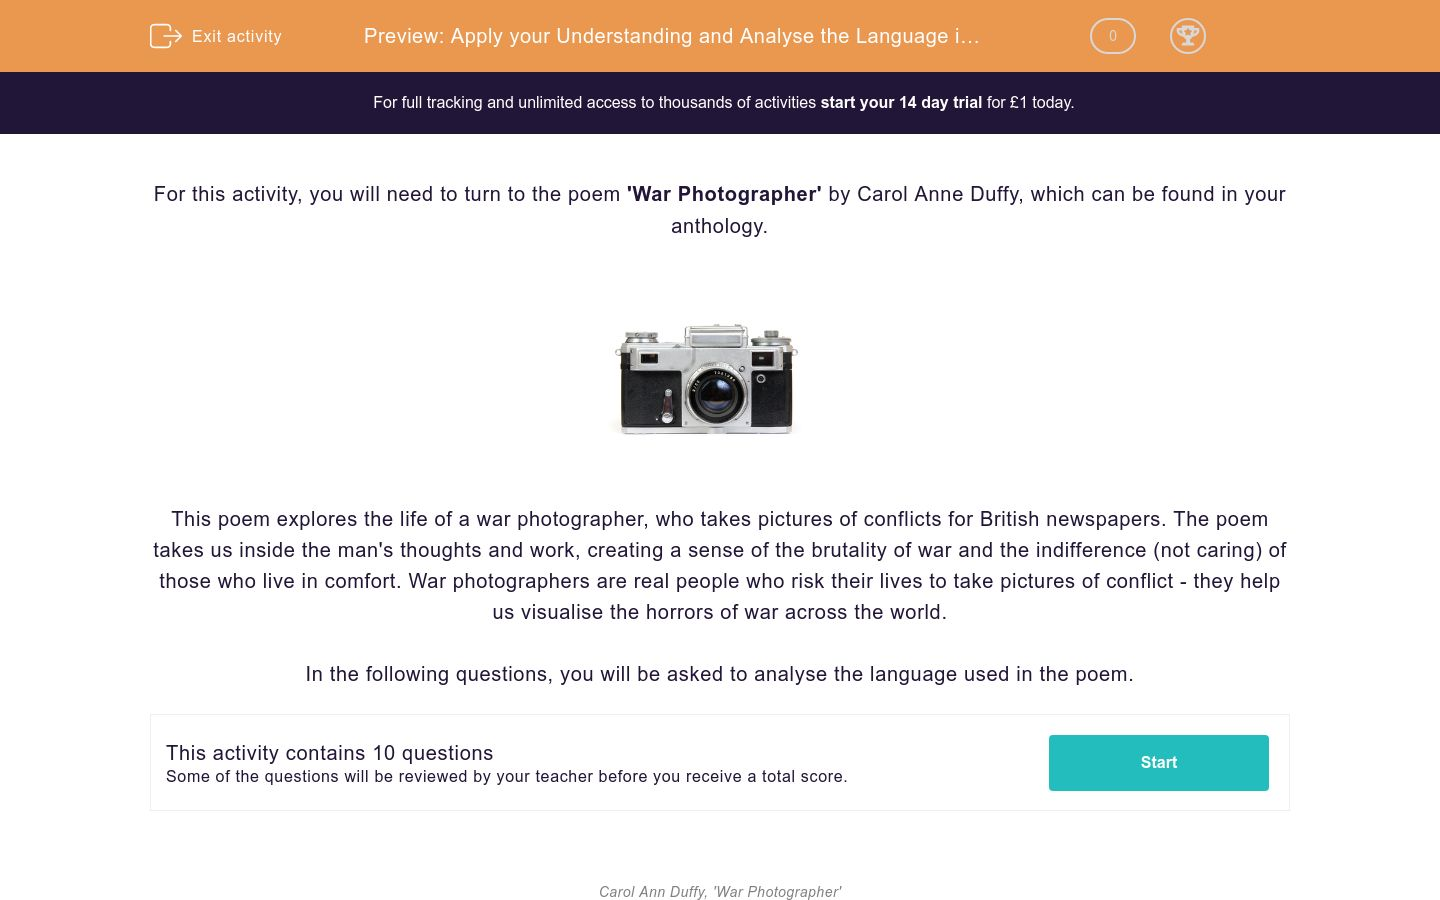 'Apply your Understanding and Analyse the Language in the Poem 'War Photographer'' worksheet